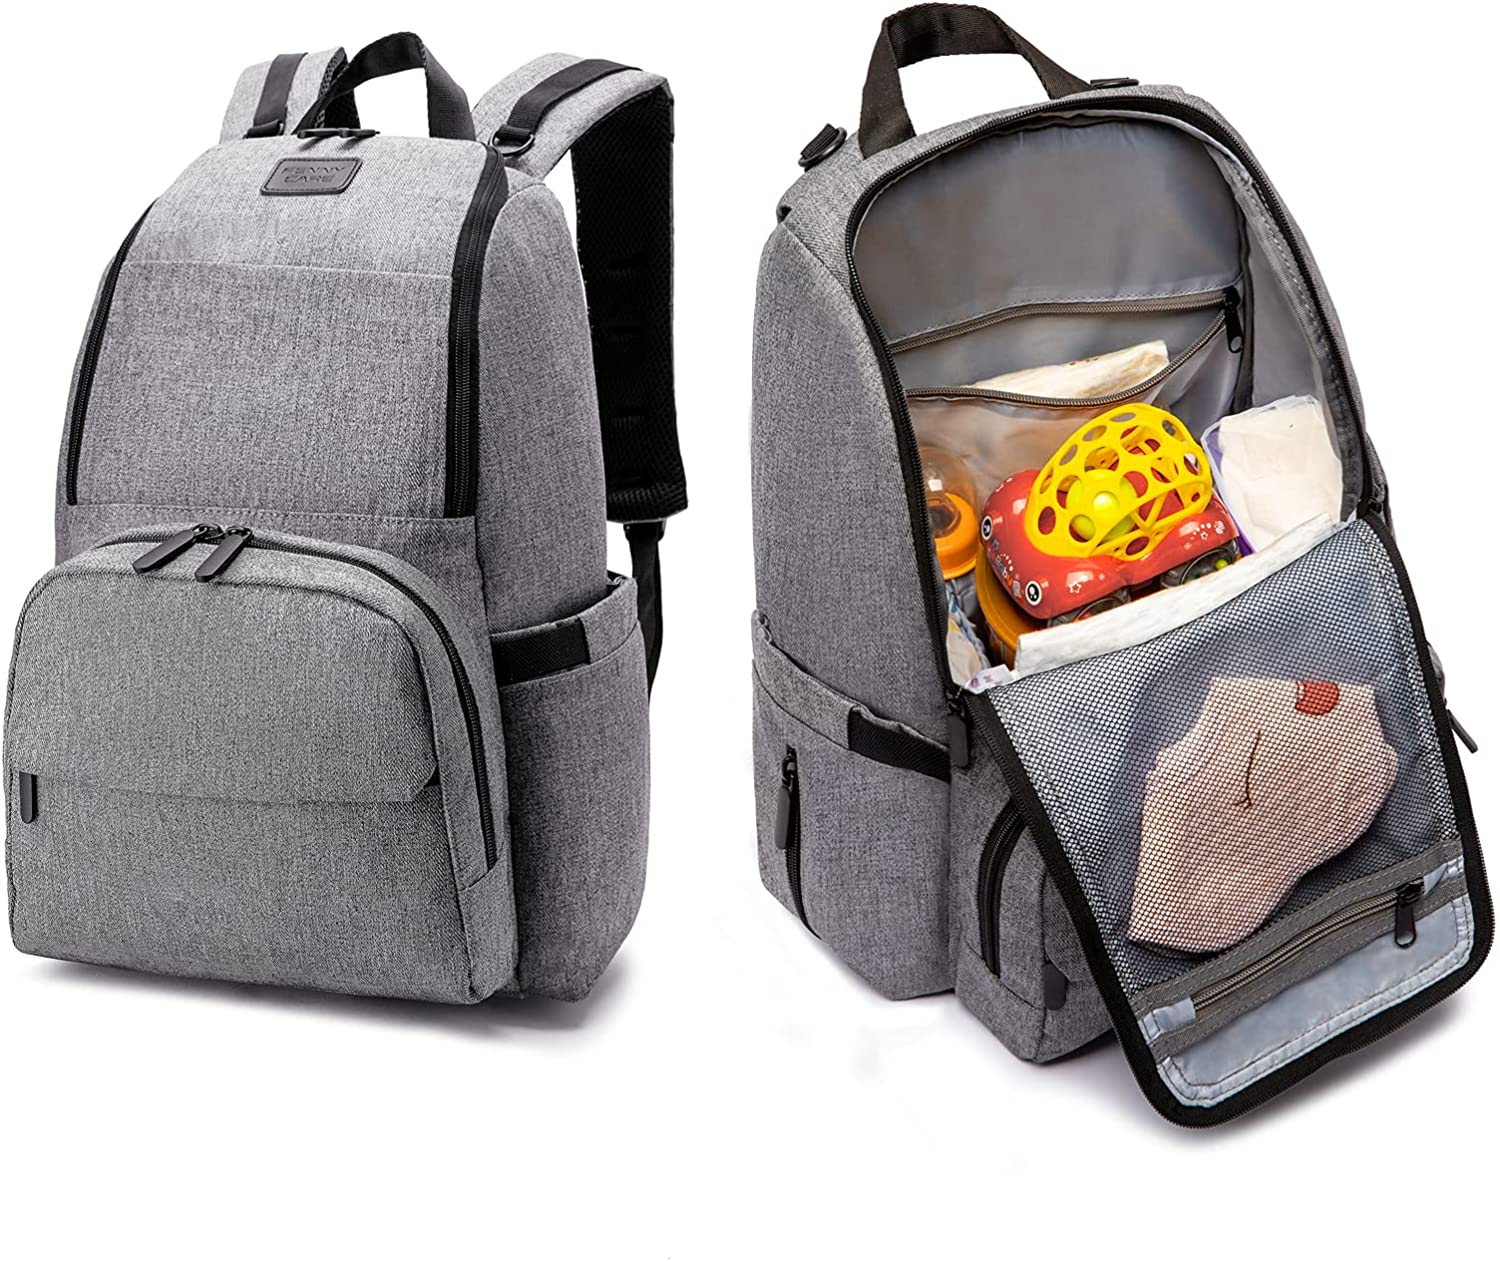 Diaper Bag Large Capacity Diaper Bag Mommy Bag Multifunctional Adult Baby Bag Can Be Hung On The Stroller Easy To Use When Traveling Splash-Proof Baby Bag Suitable For Both Men And Women